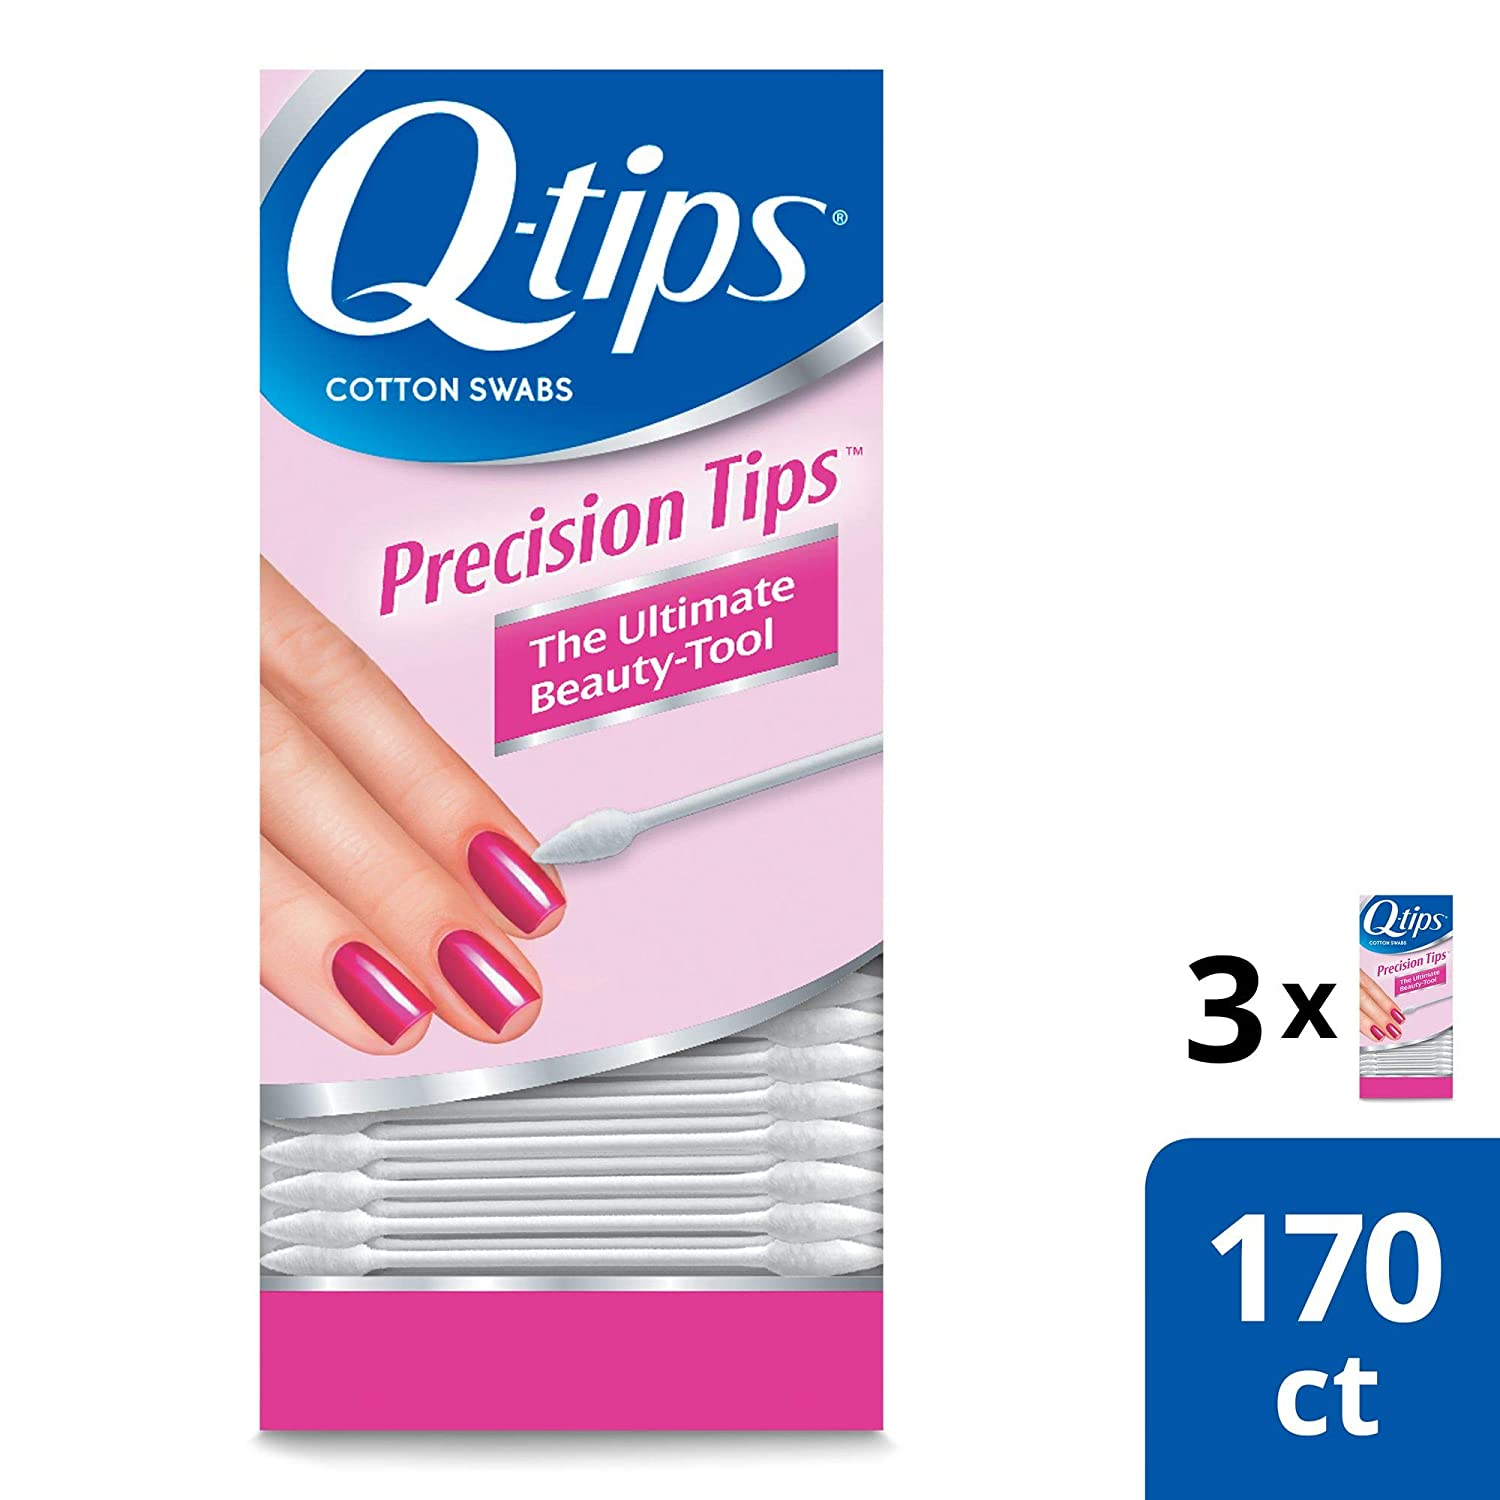 Q-tips Cotton Swabs, Precision Tip, 170 Count per Pack (Pack of 3)